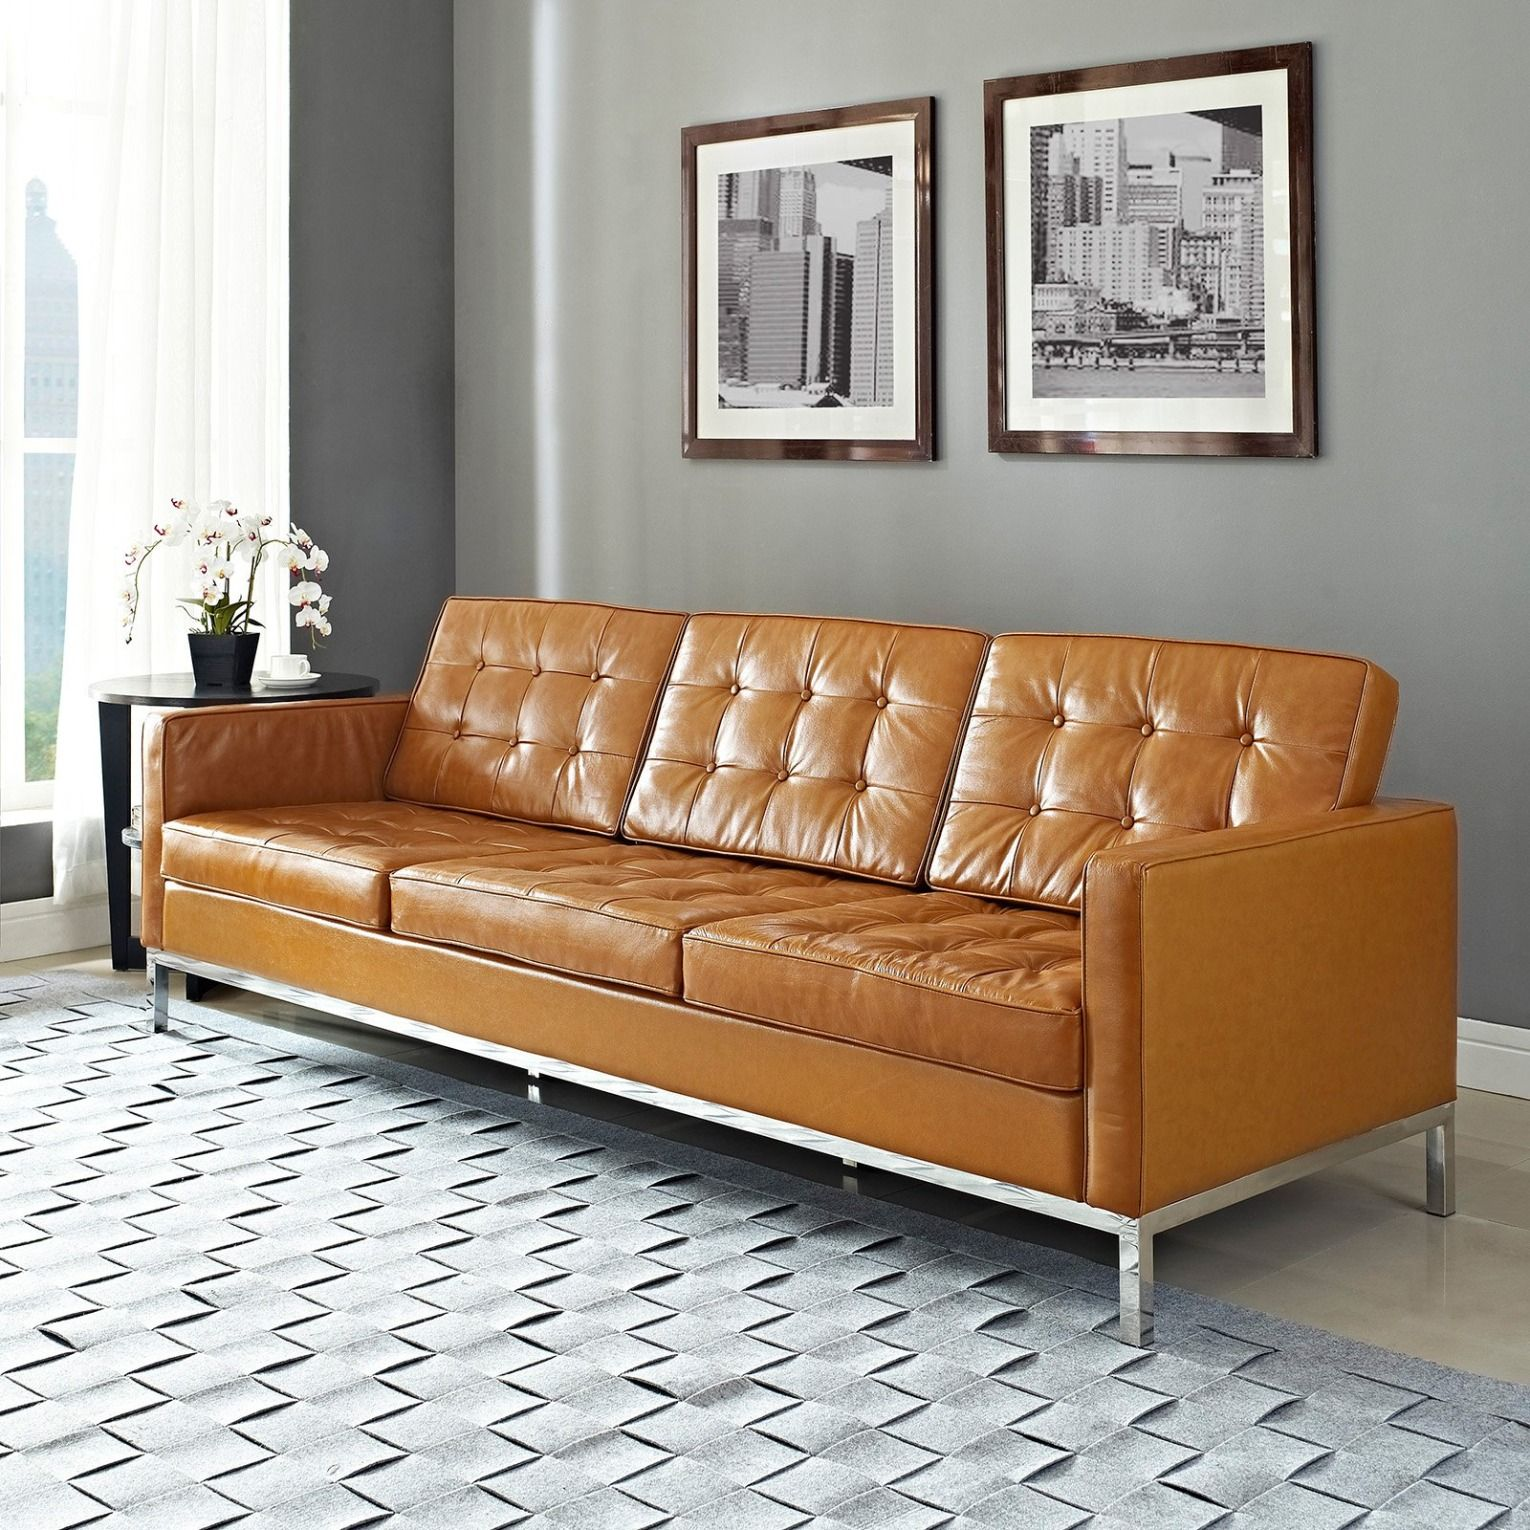 Add Chic And Modern Design Into Your Room With This Modway Loft